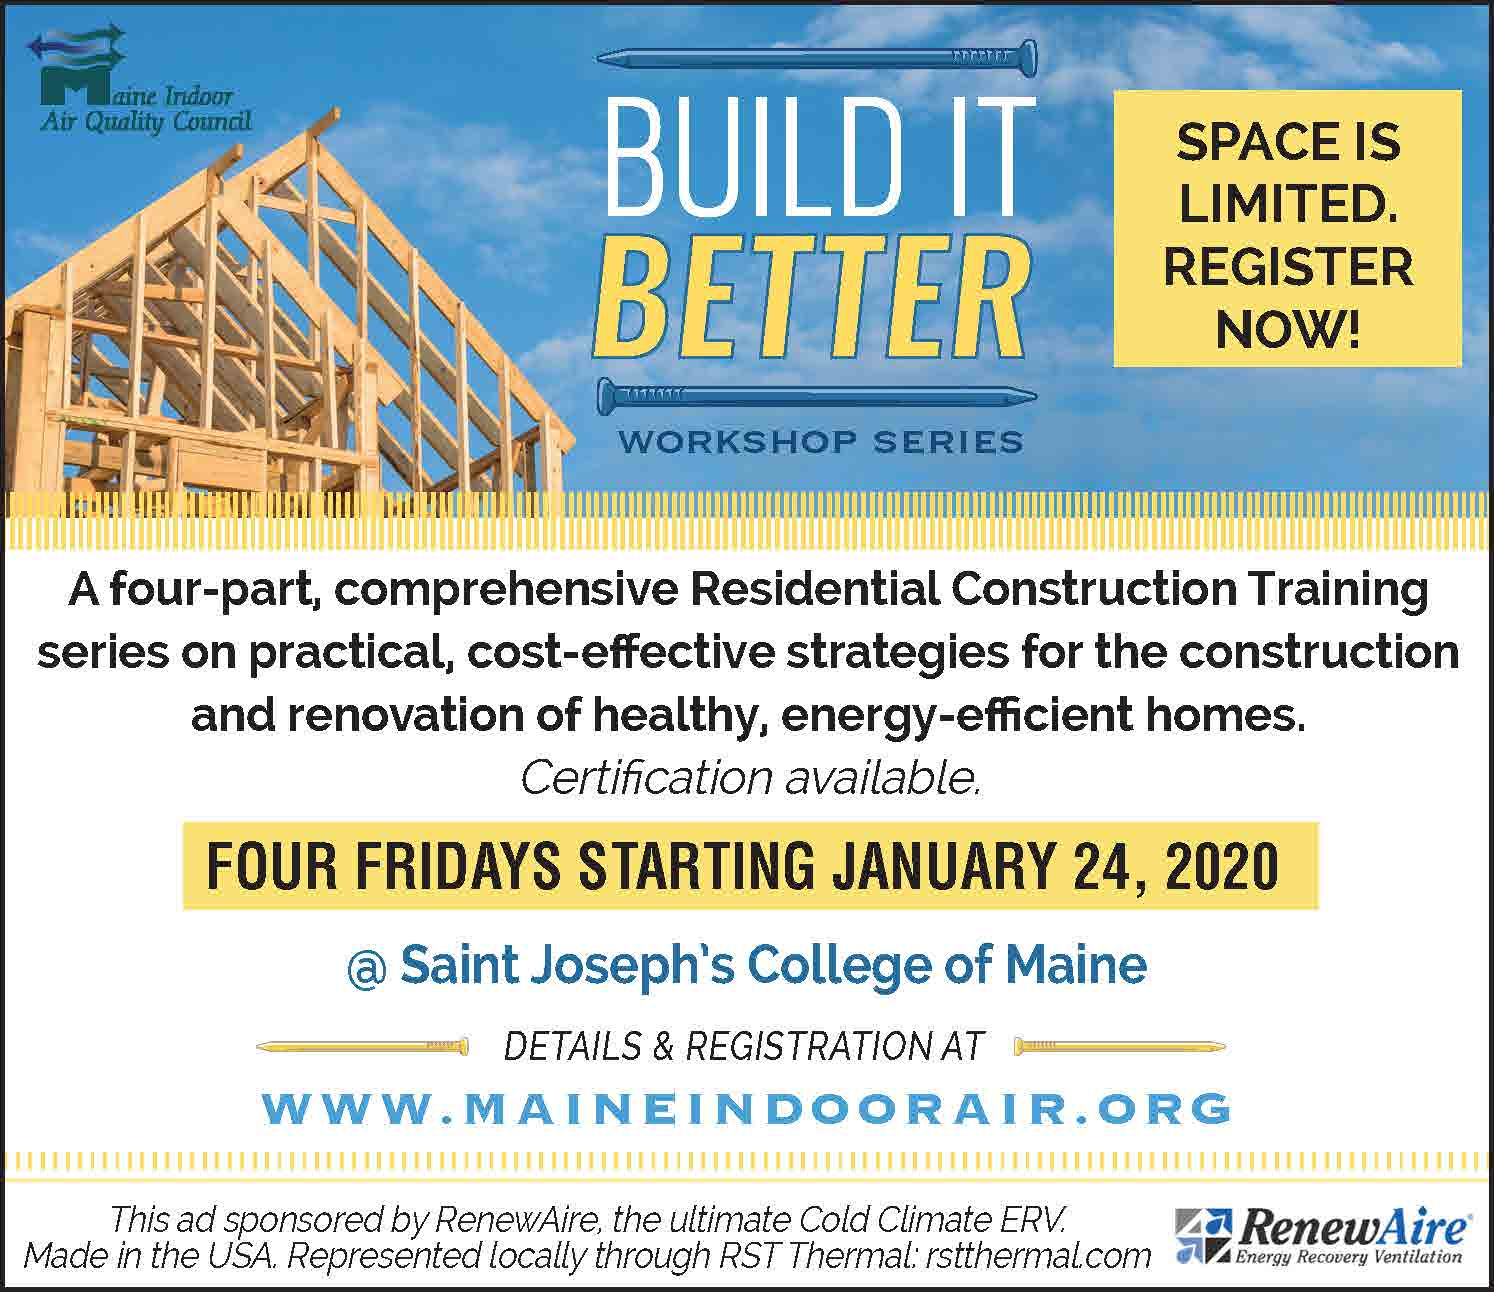 https://maineindoorair.org/residential-construction-trainings/